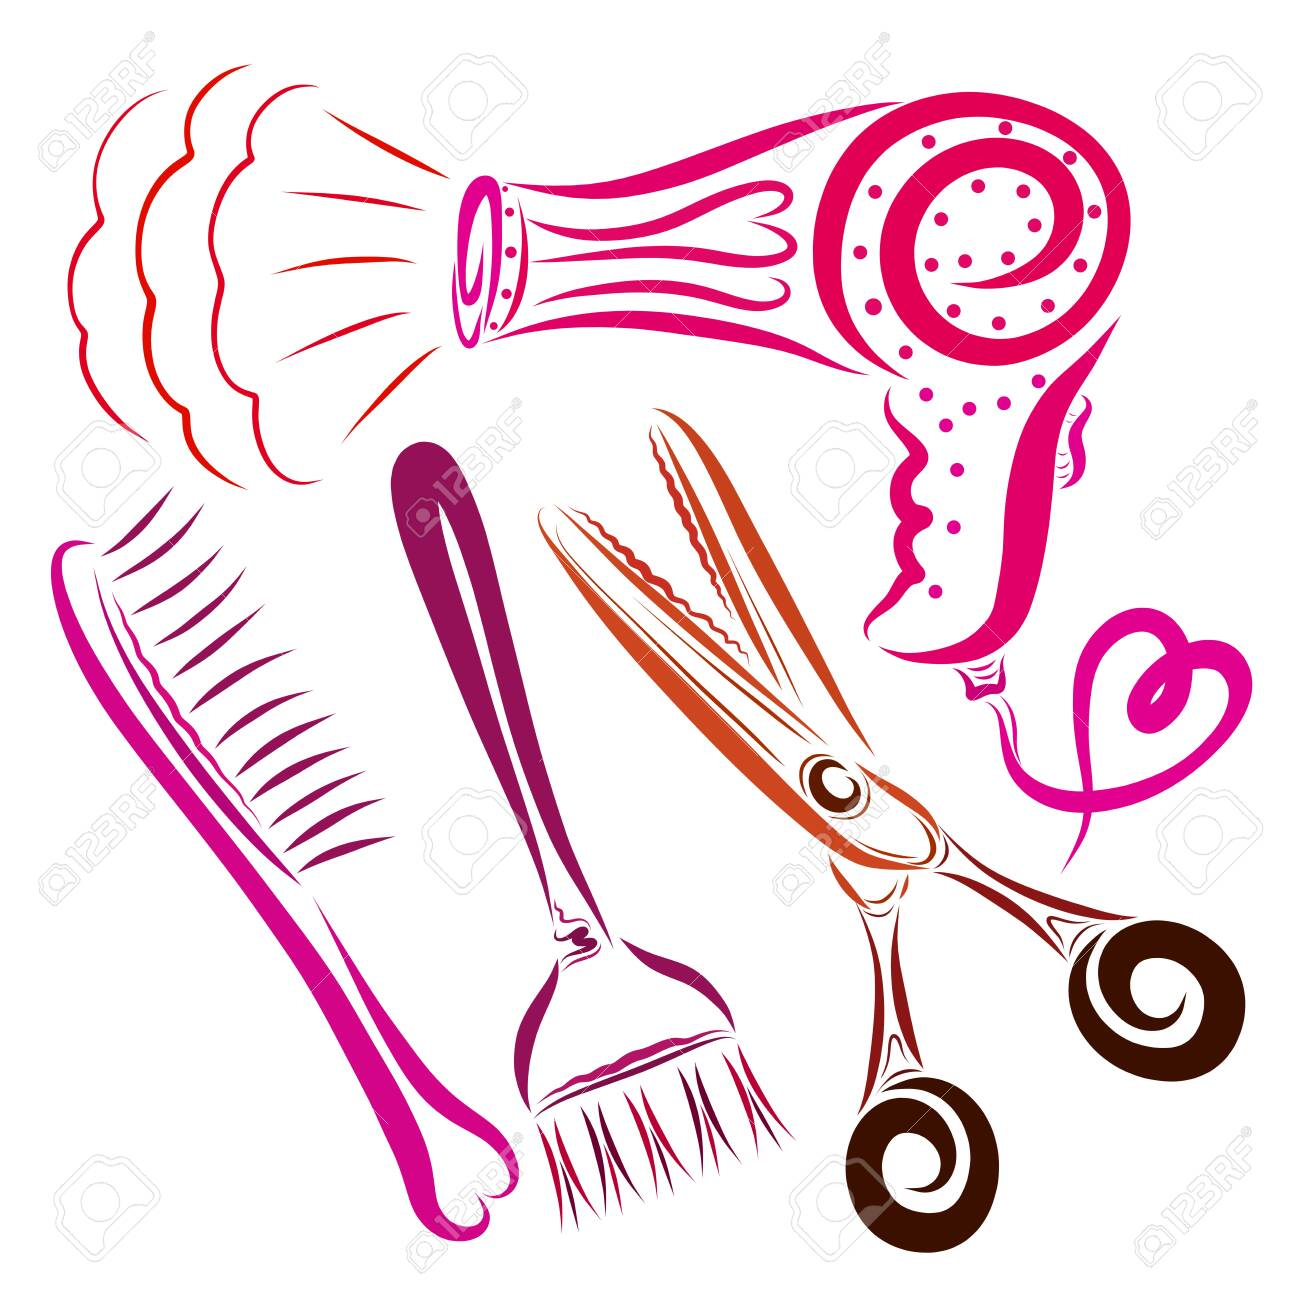 Hair dryer with a heart, a comb, a brush for coloring hair and scissors - 121173191